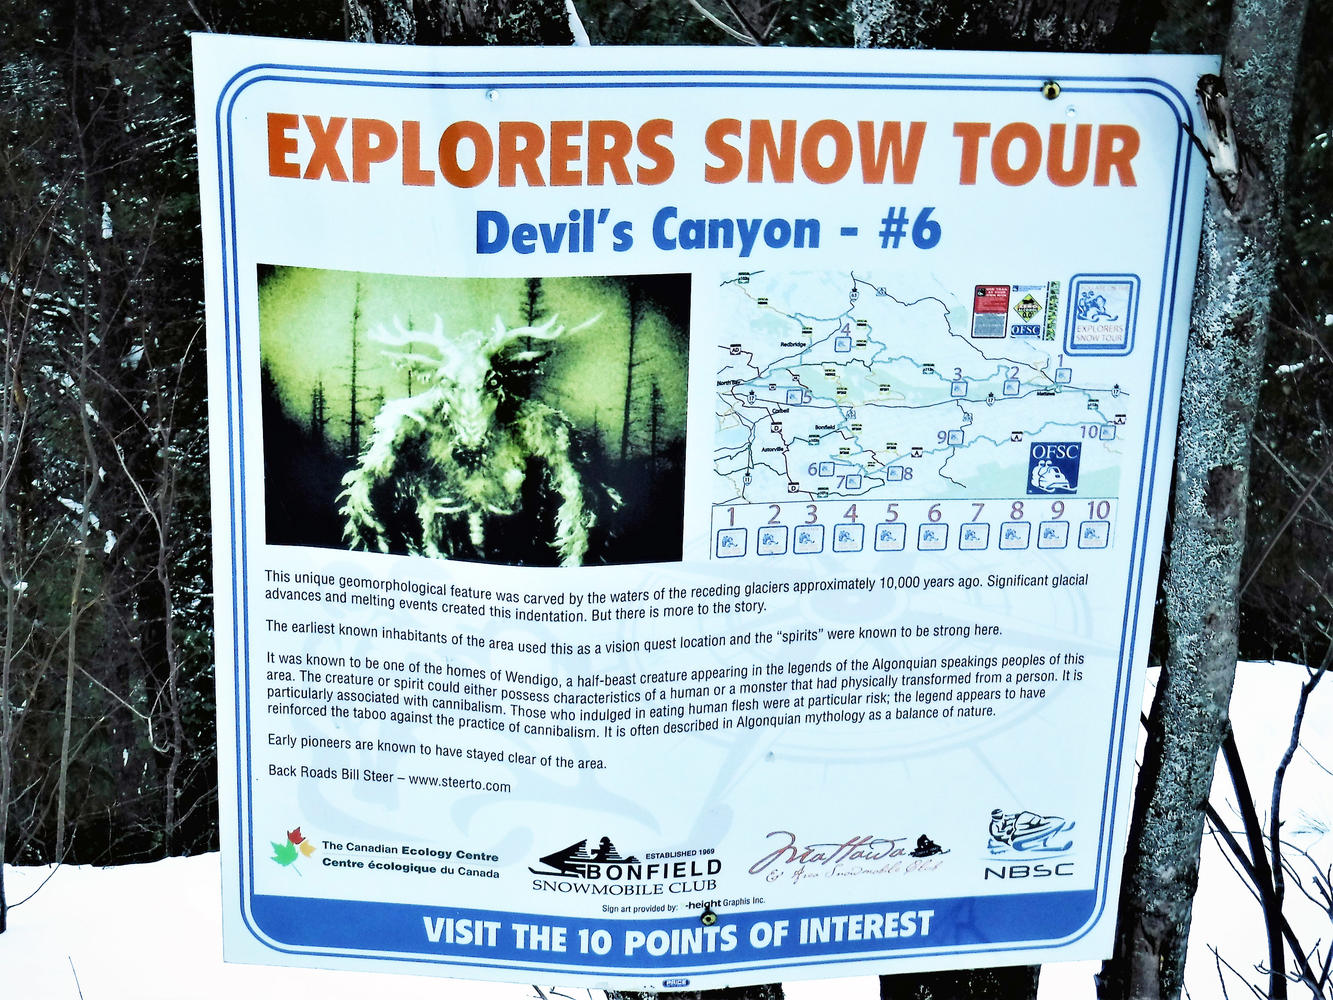 OFSC Tour Loop - The Explorers Snow Tour - Devil's Canyon